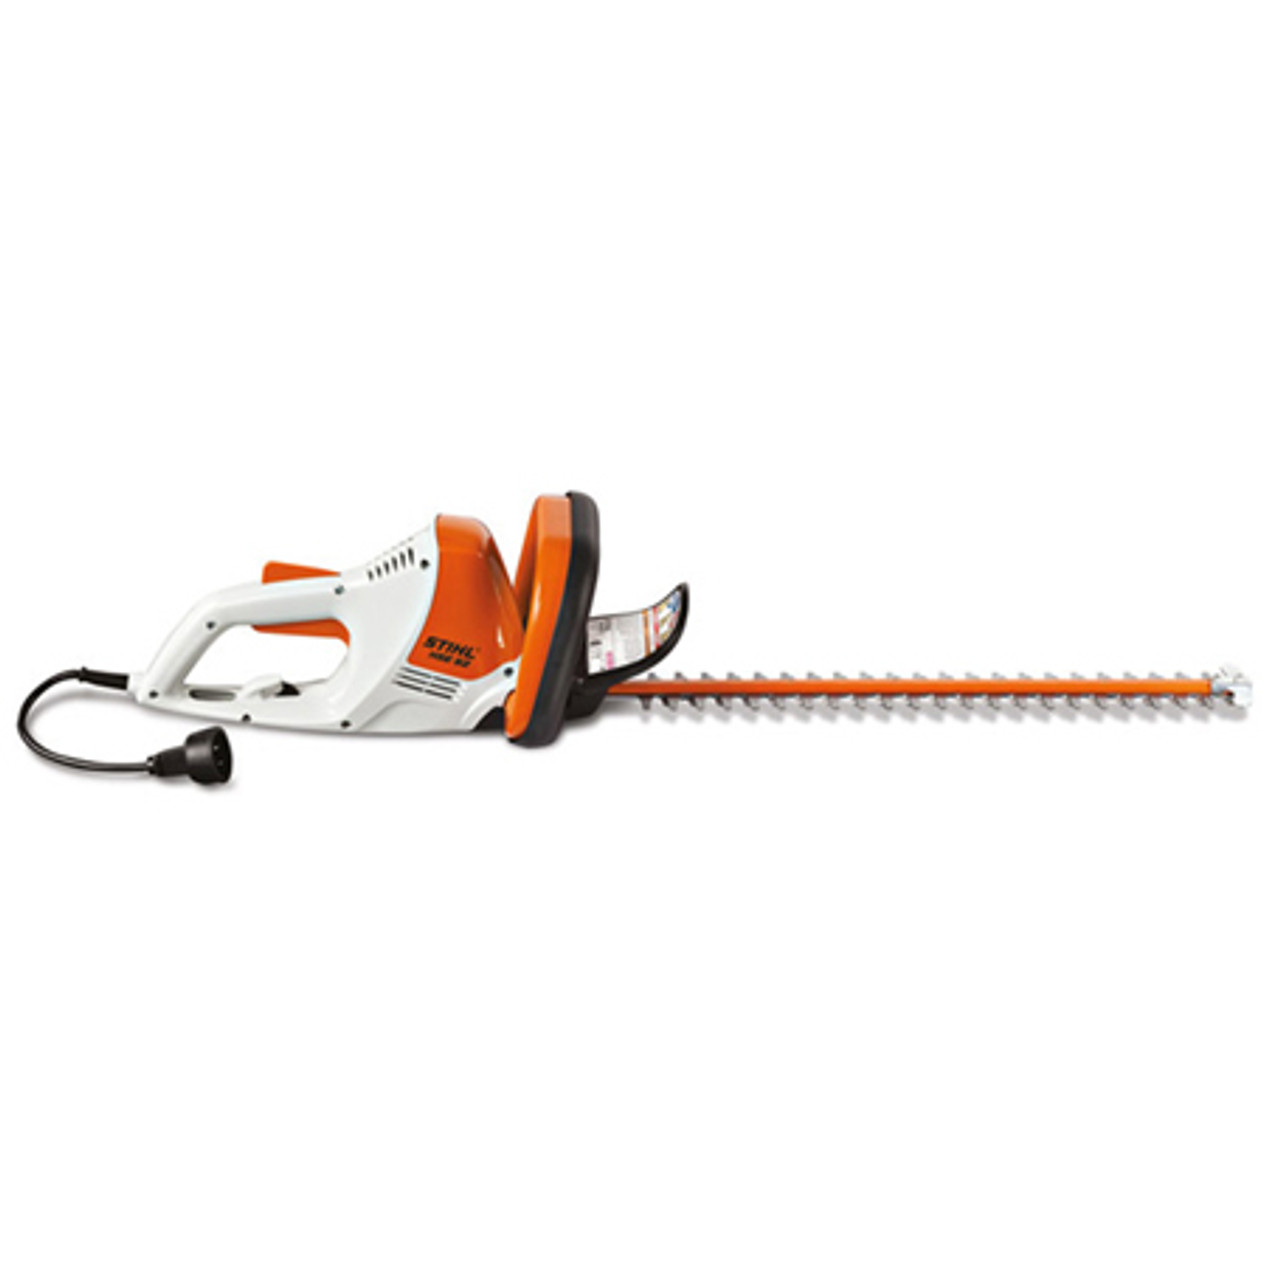 """STIHL HSE 52 Electric Corded Hedge Trimmer w/ 20"""" Blades Image"""